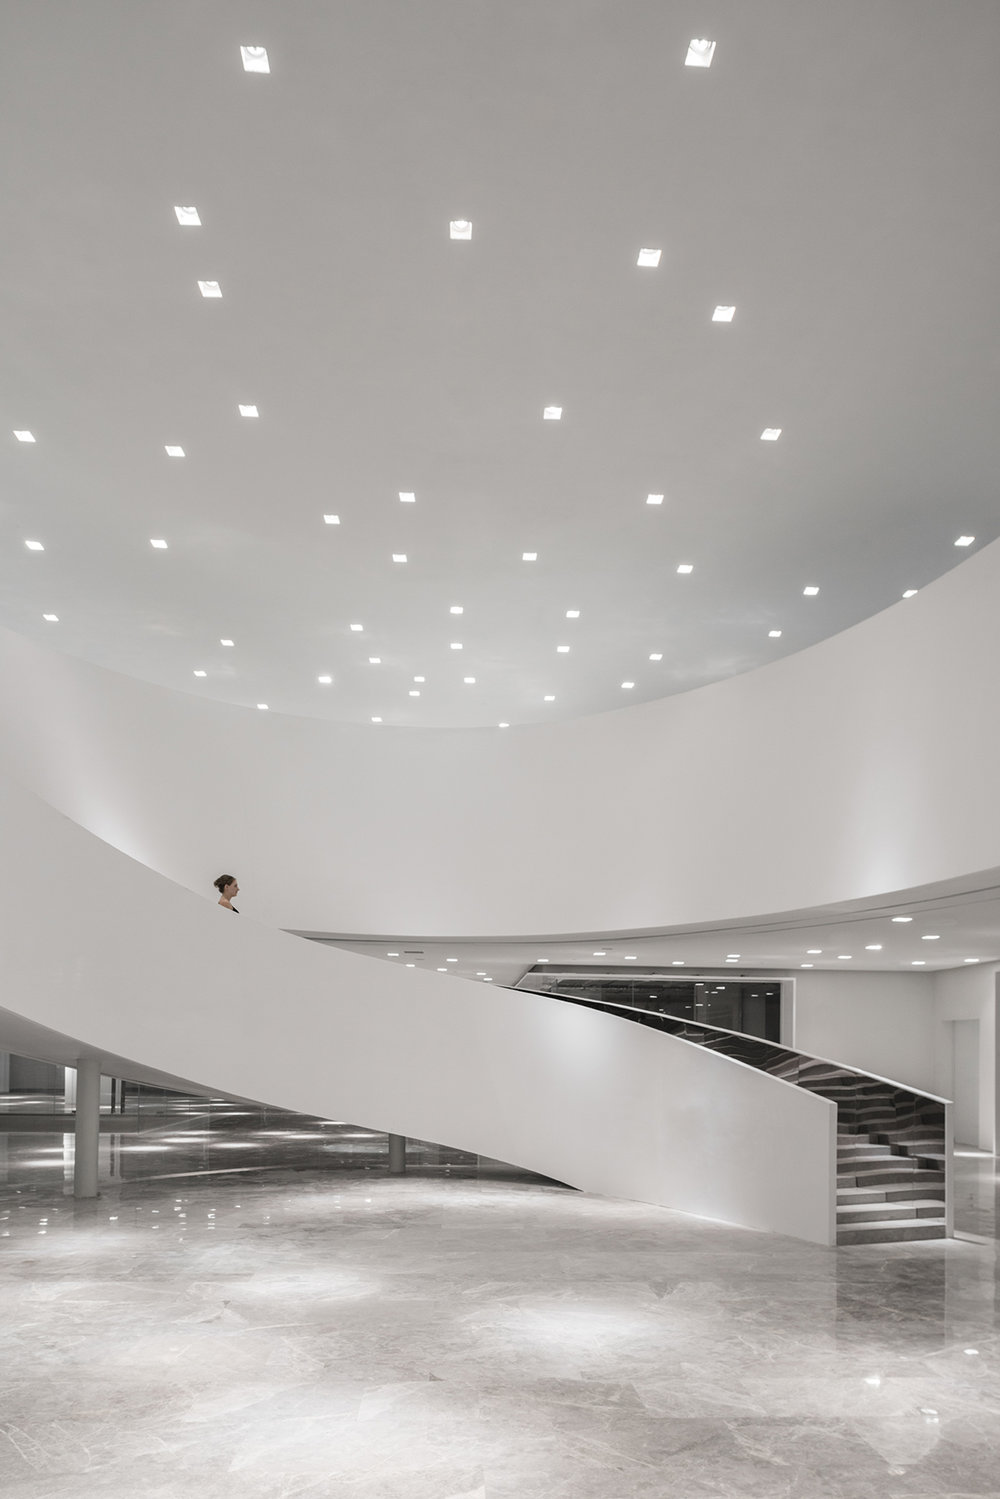 Fuxing Plaza designed by AIM Architecture